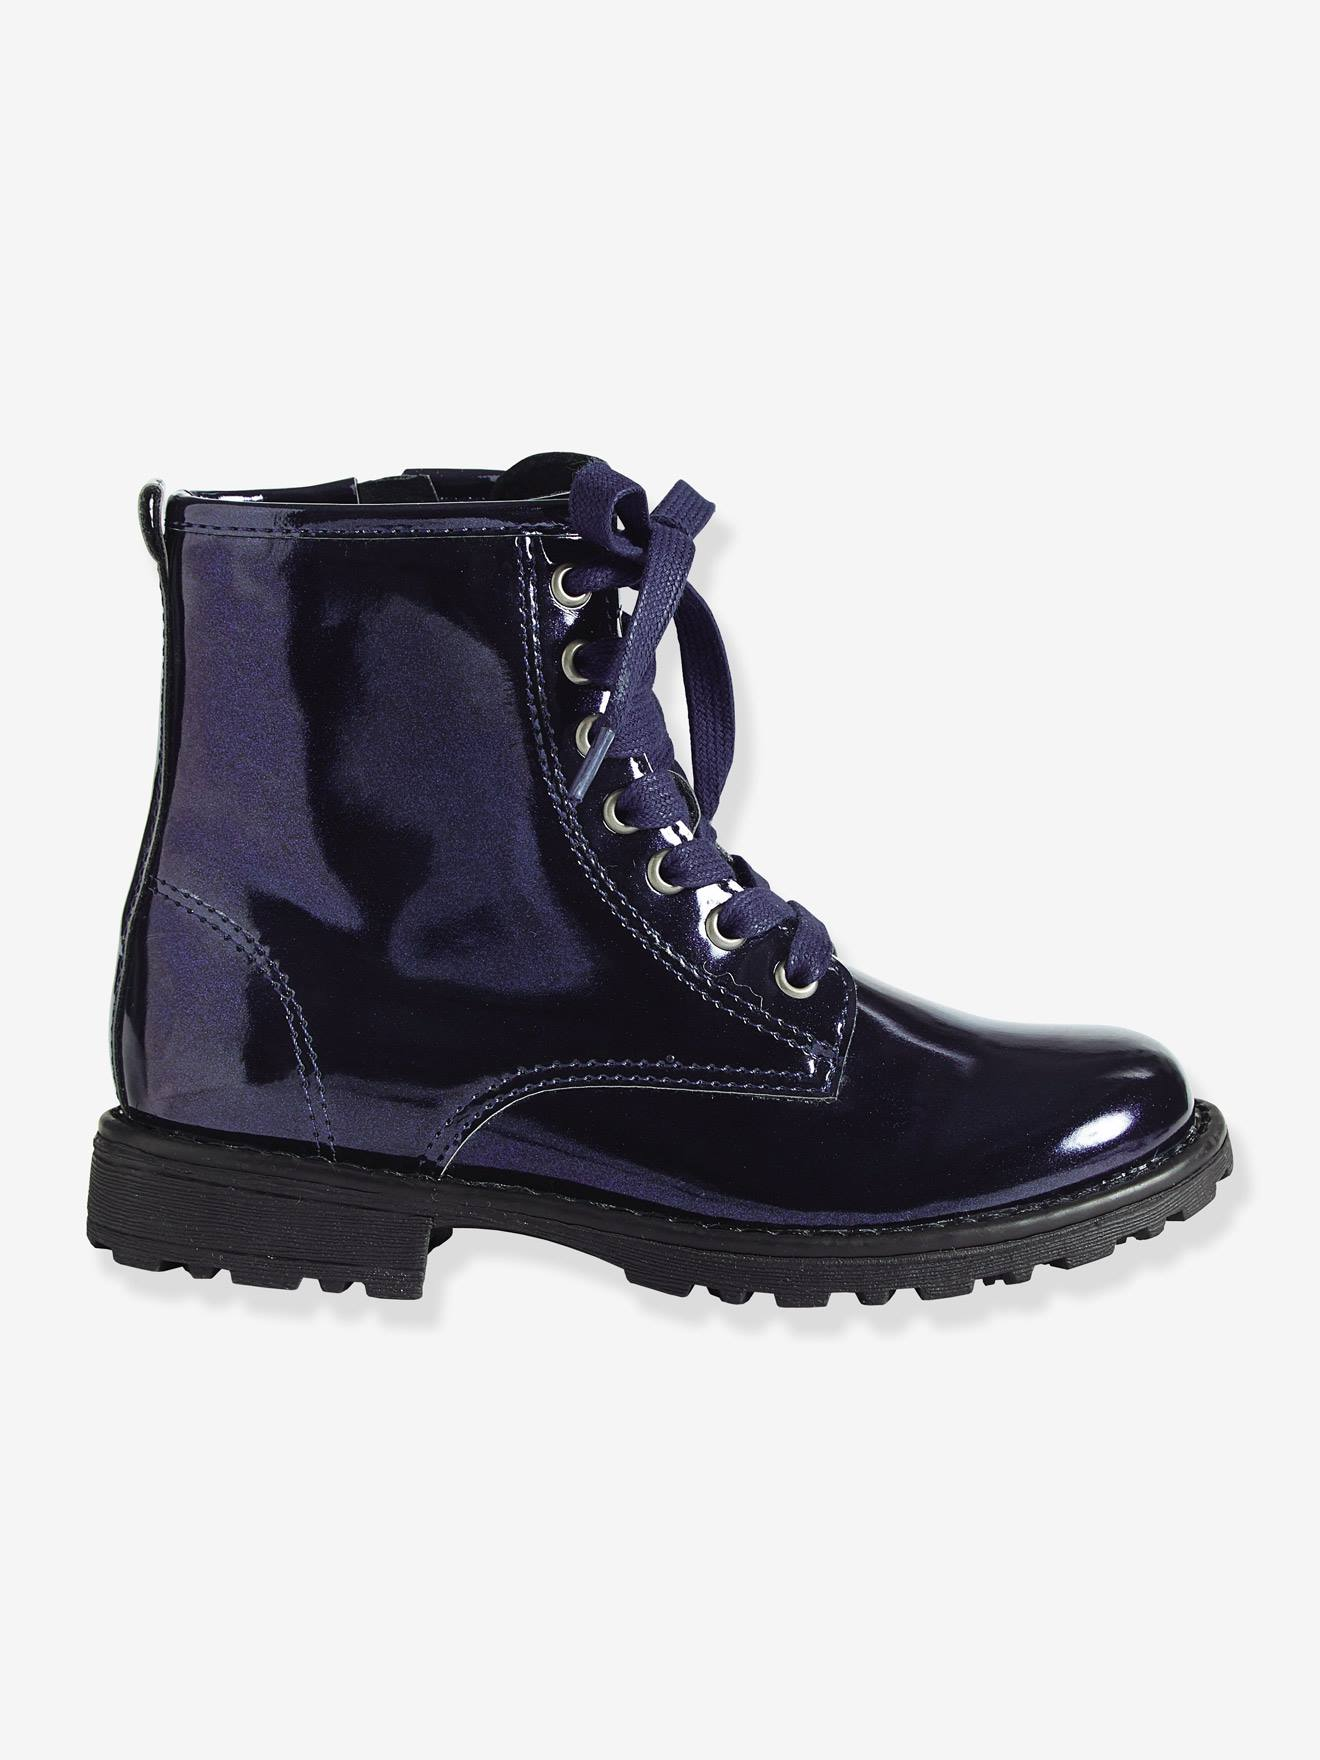 Girls' Lace-Up Ankle Boots - blue dark